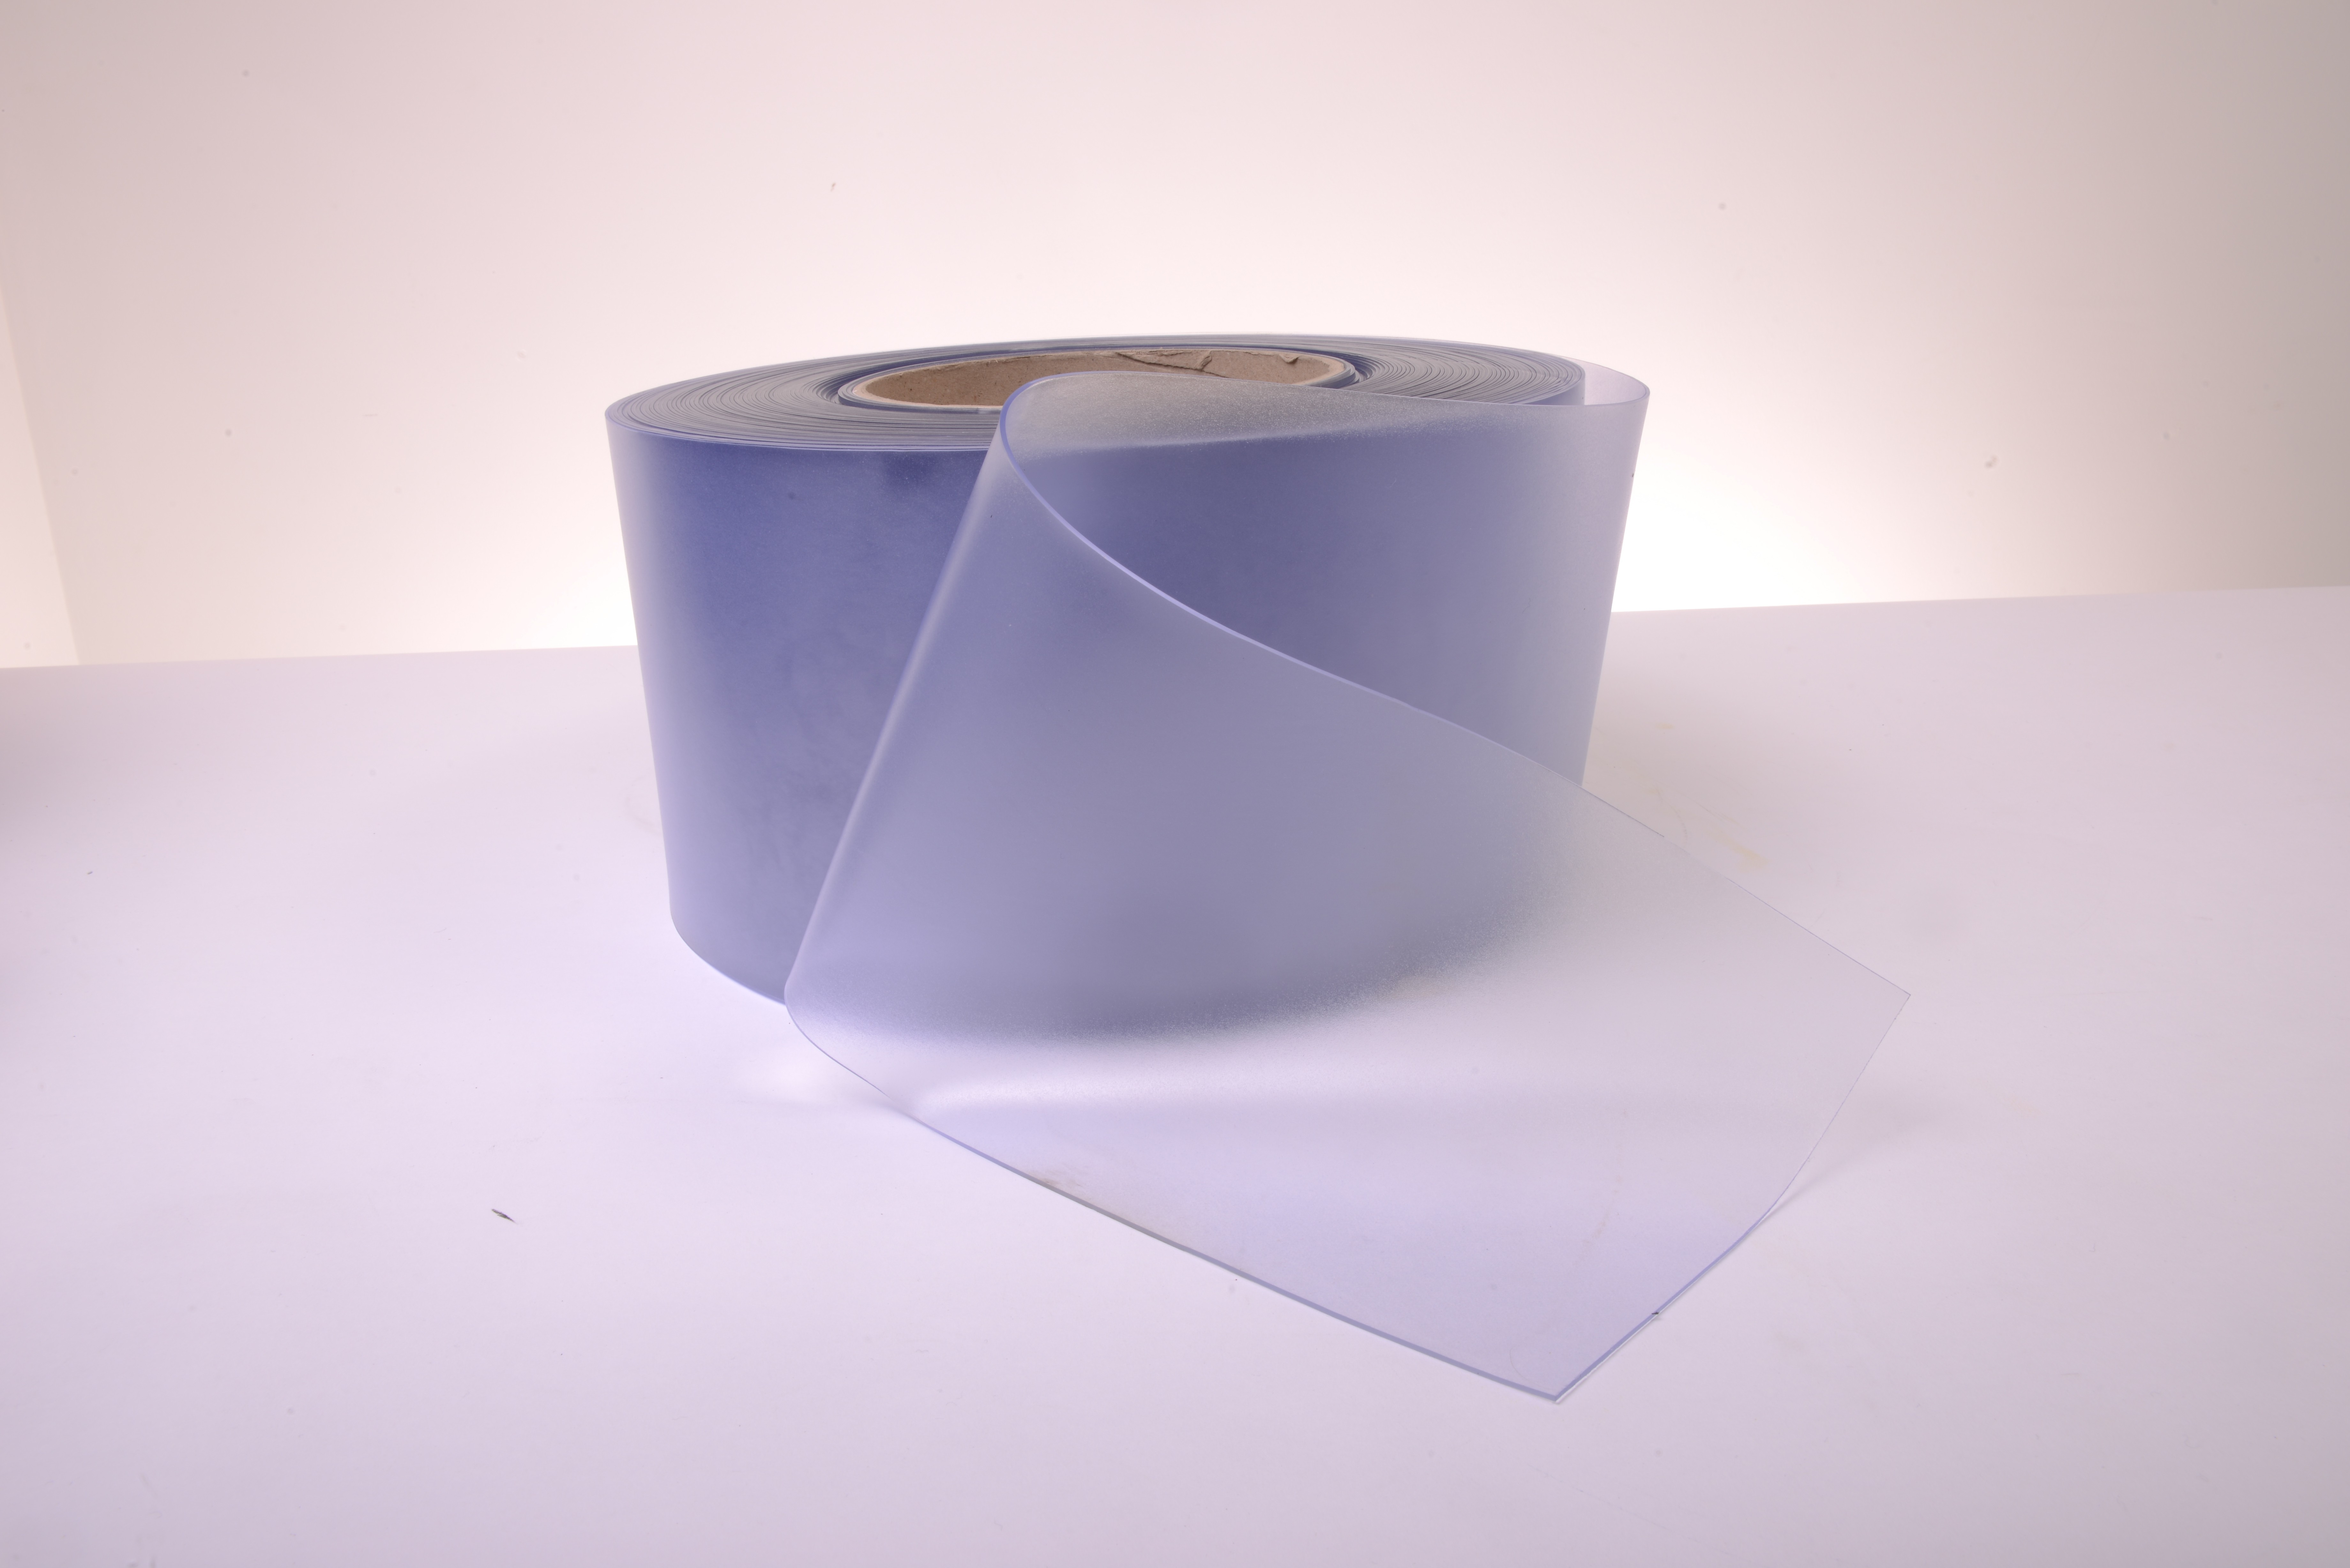 Frosted Pvc Strips For Partial Privacy Applications